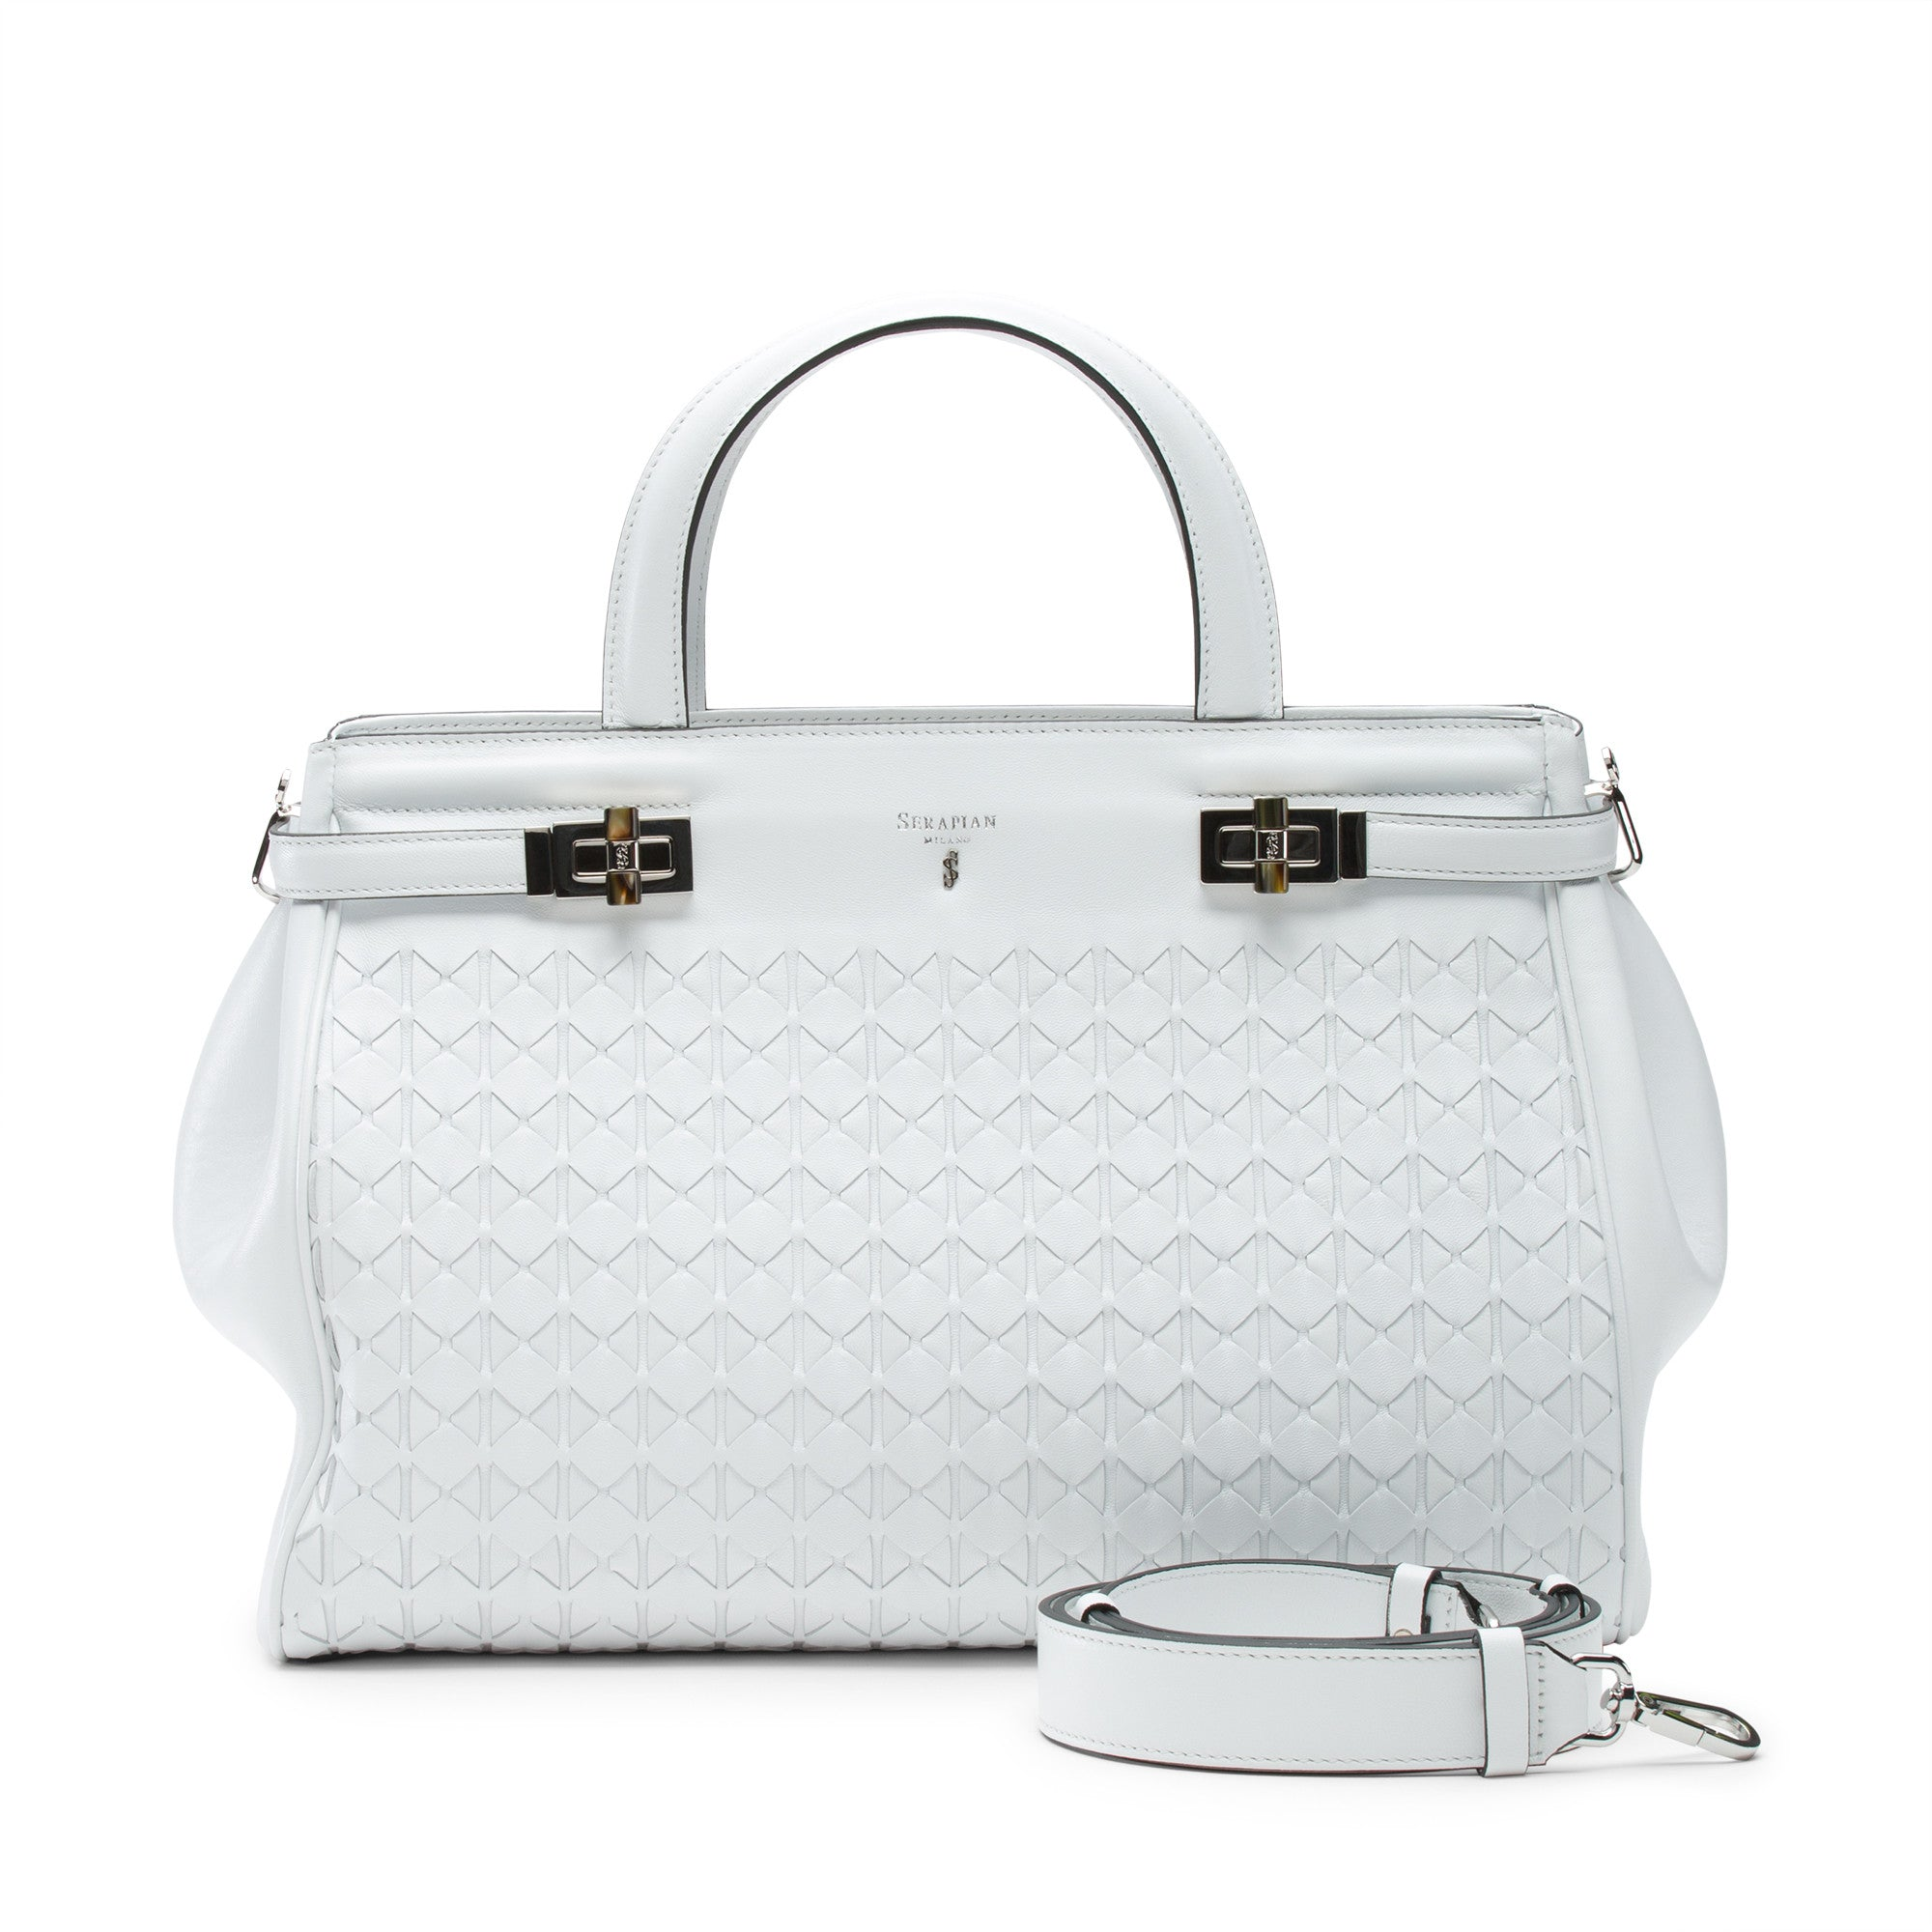 Soft Meline in optical white nappa leather. Beautiful mother of pearl resin and silver hardware. Lined in microfiber suede, zippered inside pockets as well as pocket for cell phone. Detachable shoulder strap can also be used as a crossbody.